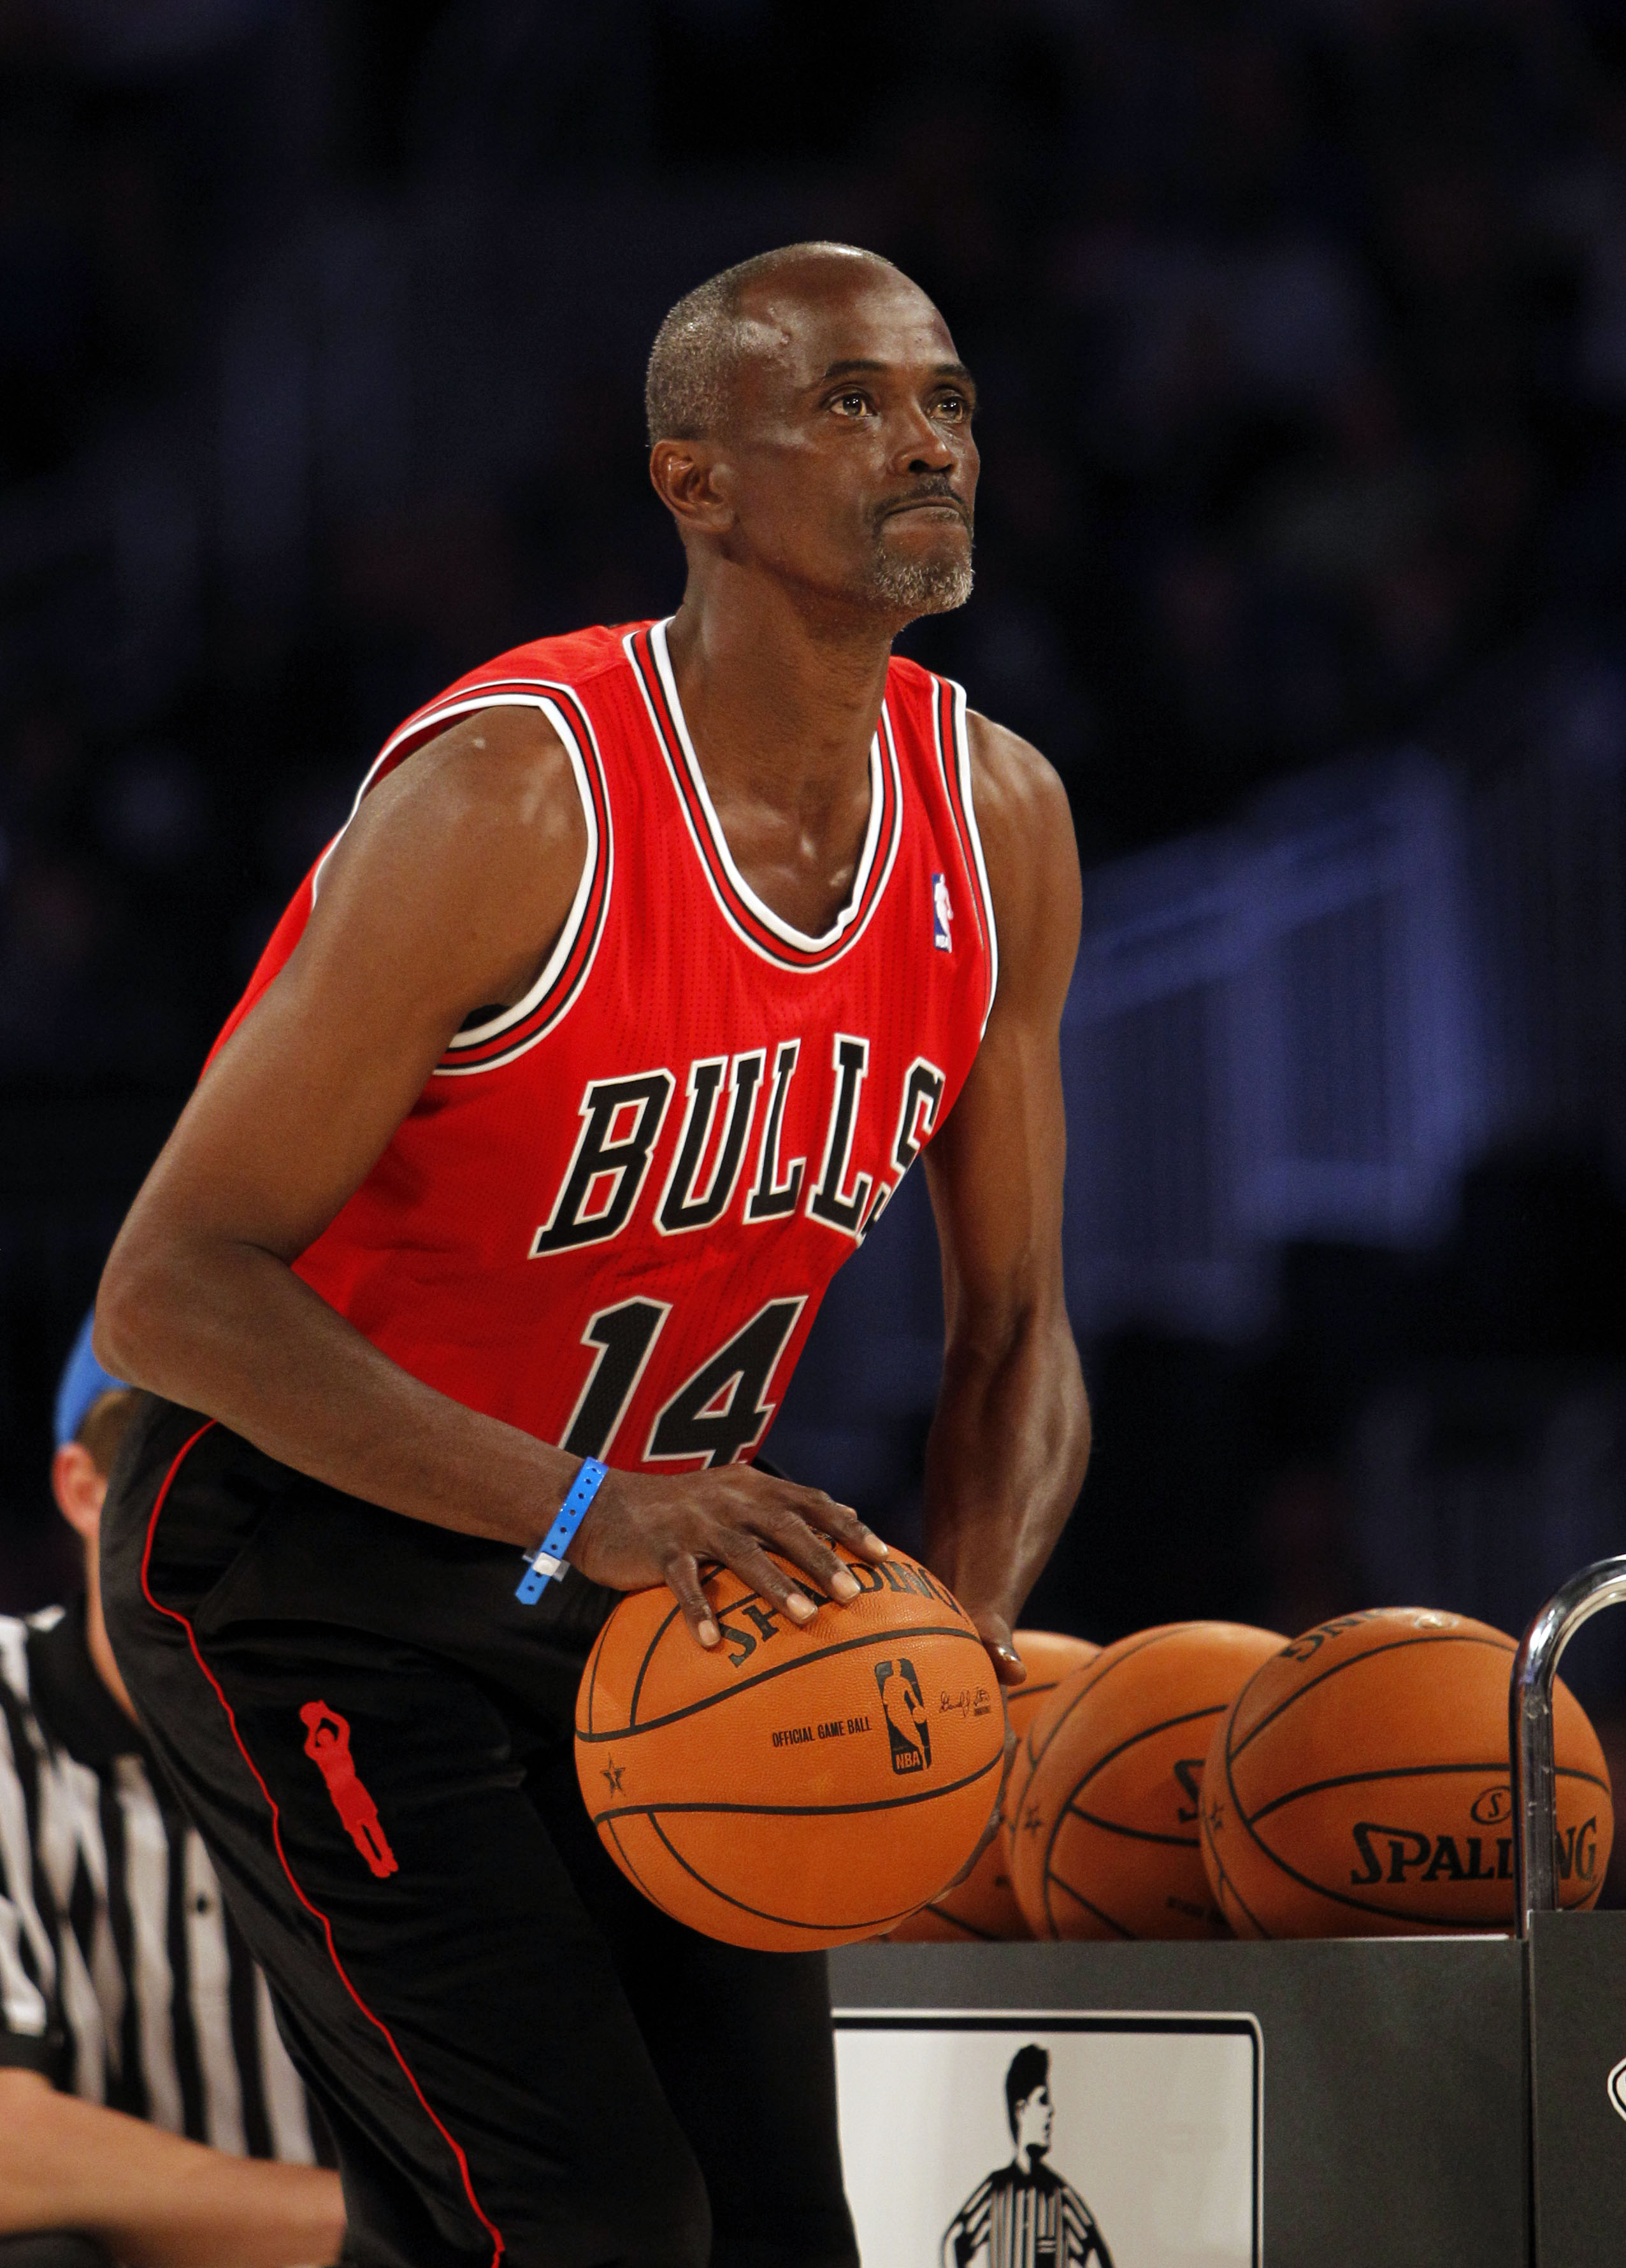 """Ex-Bull Craig Hodges, shown in a 2012 file photo, took issue with Michael Jordan's comments about what was known as the Bulls' """"traveling cocaine circus."""""""